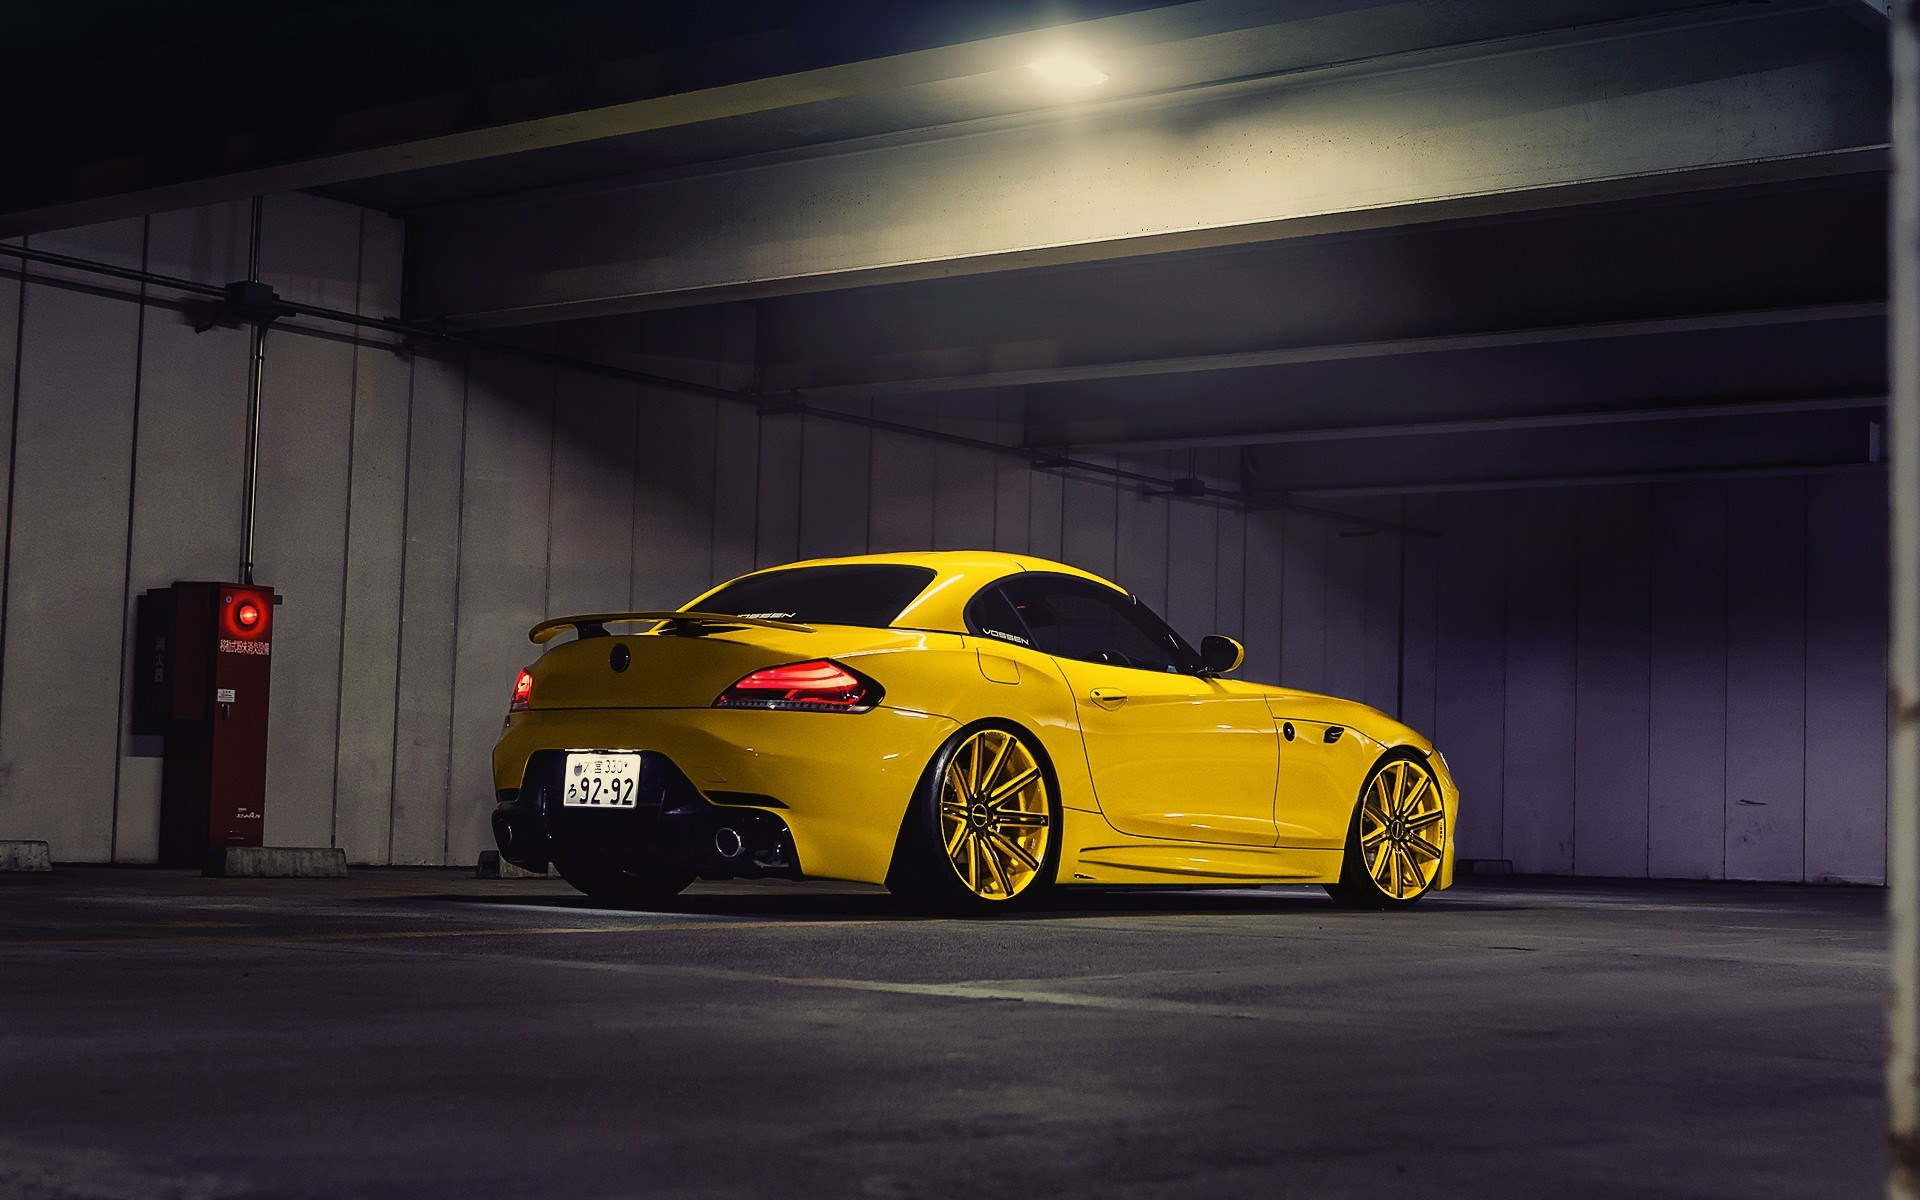 BMW Z4 Yellow Tuning Wheels Vossen Parking Japan Tokyo